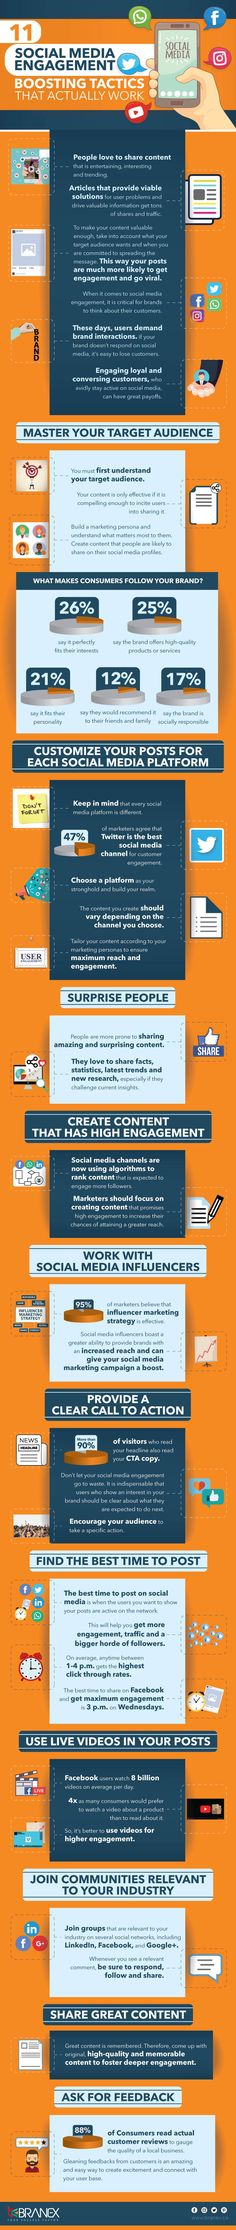 11 Social Media Engagement Boosting Tactics That Actually Work #Infographic #Business